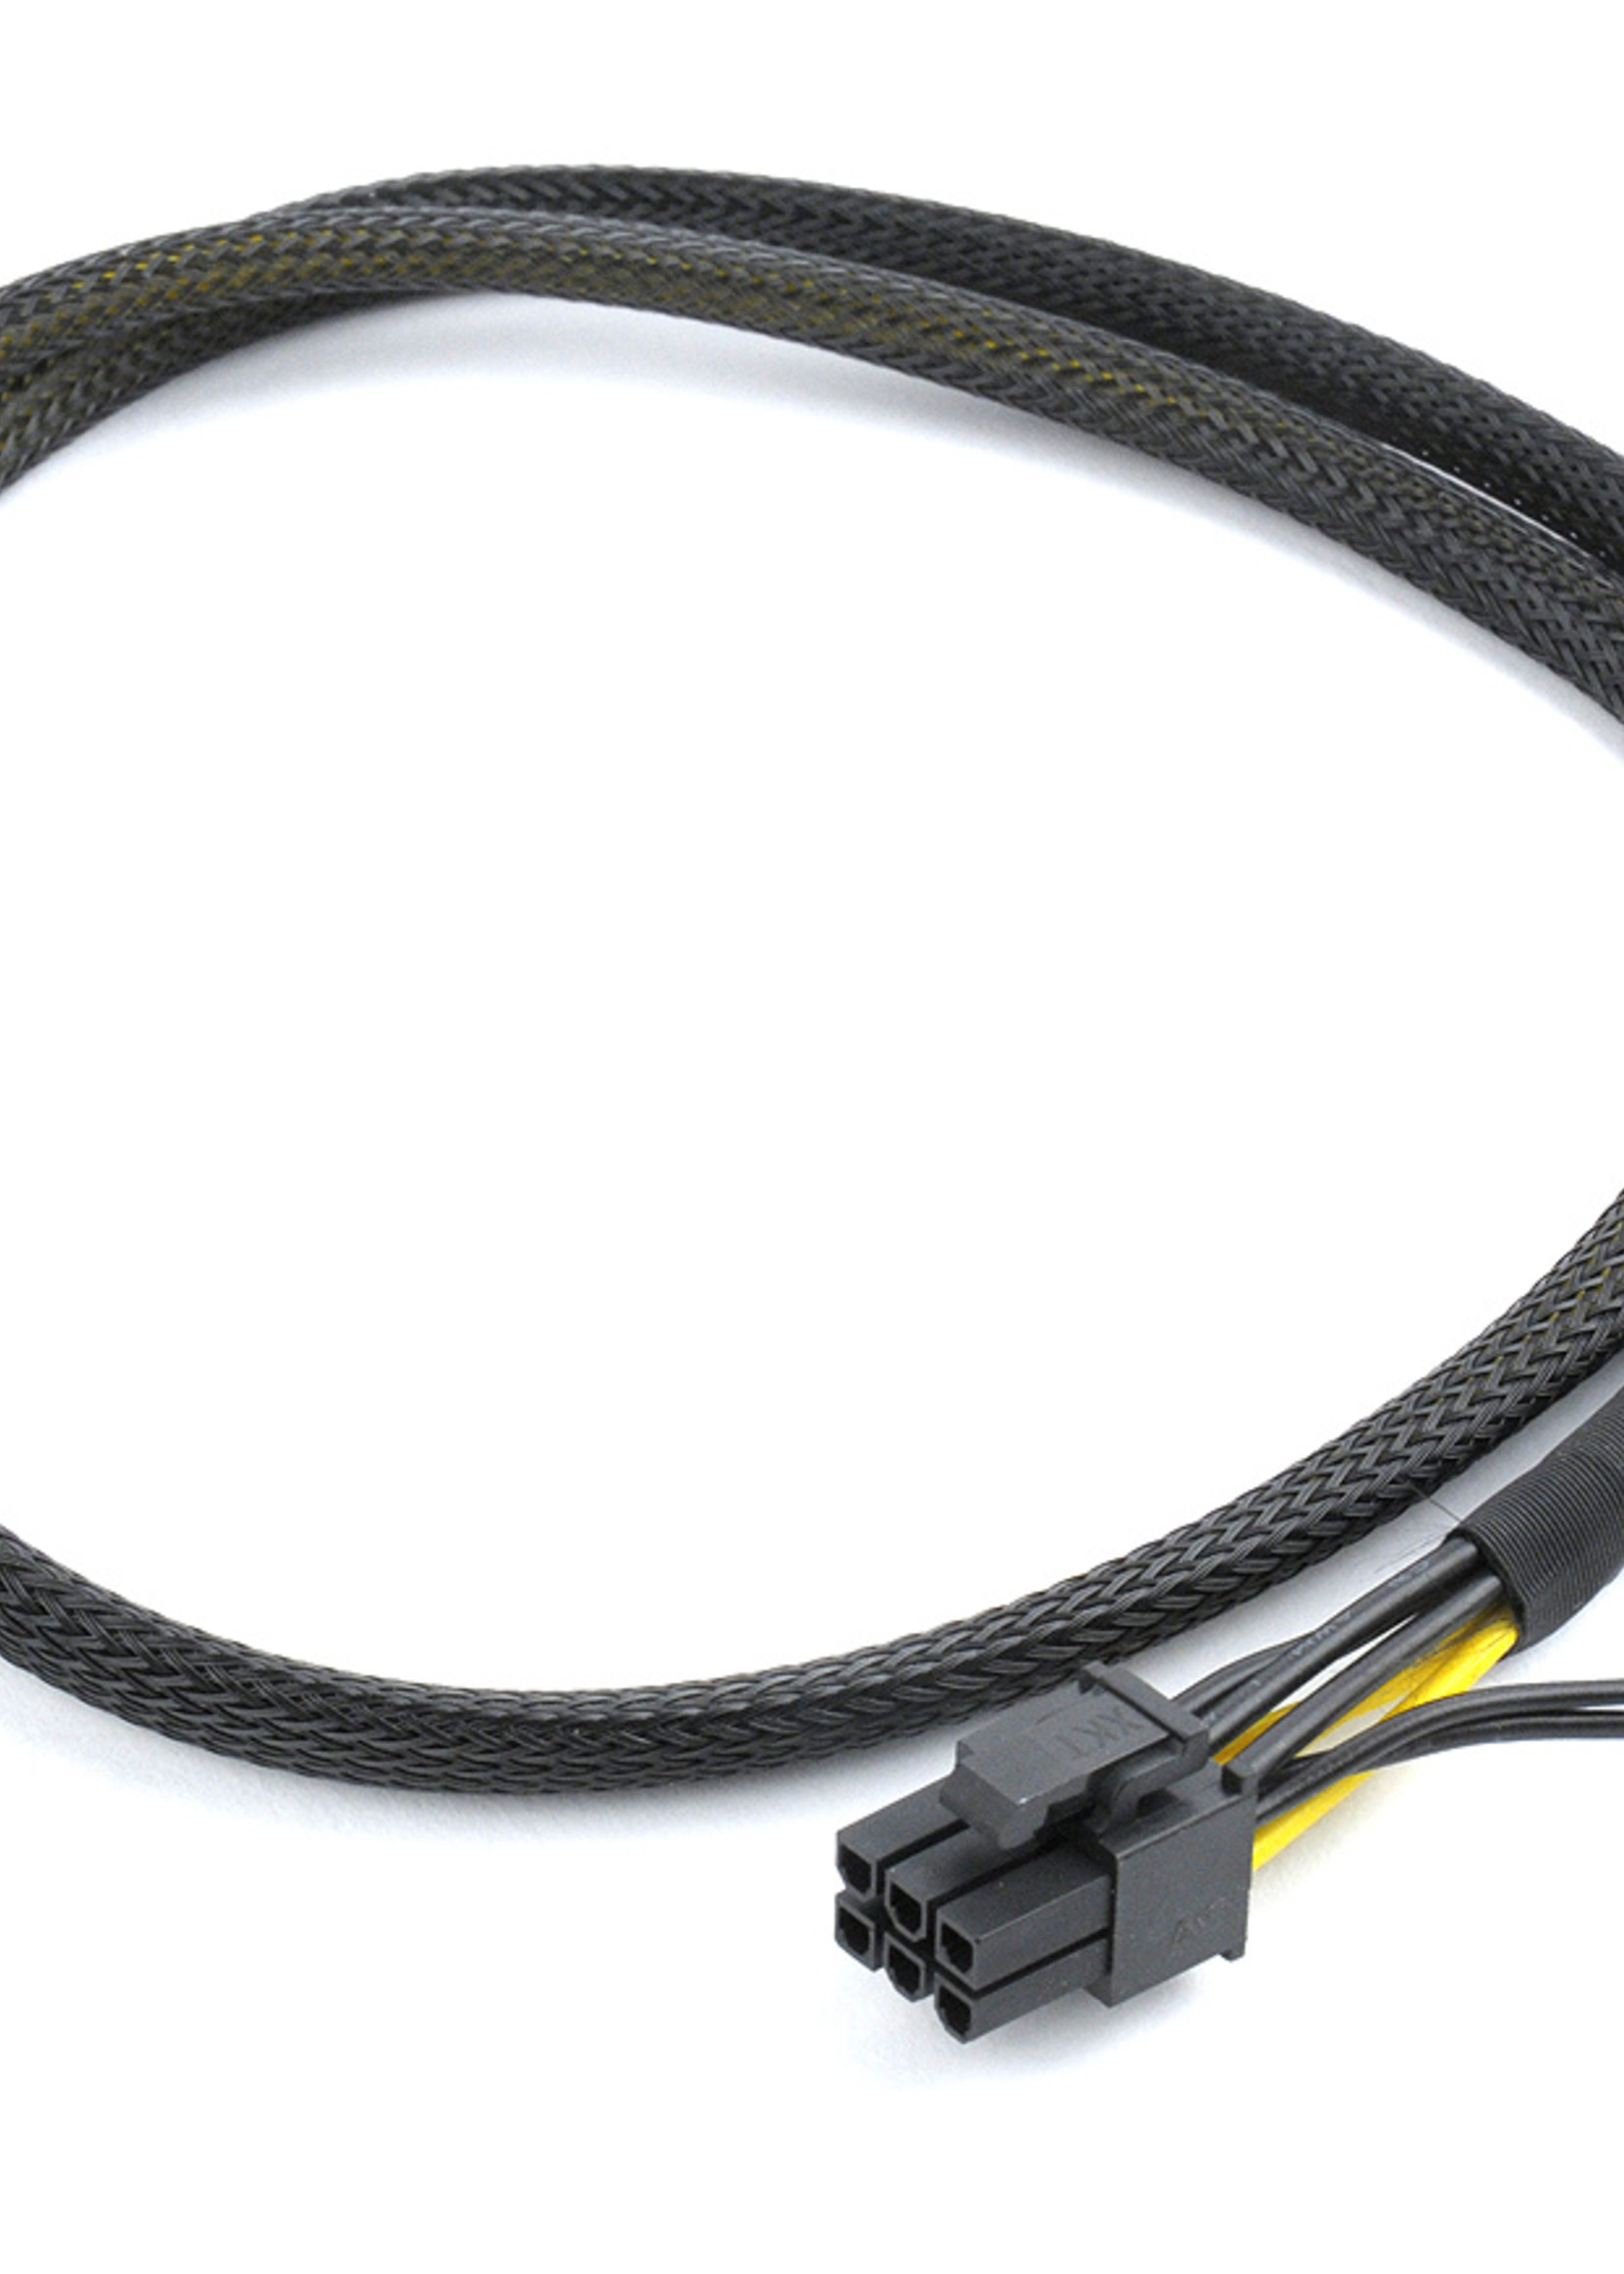 CableXpert PCI-Express 6-pin male to 6+2 pin male power cable, 0.8 m, mesh jacket